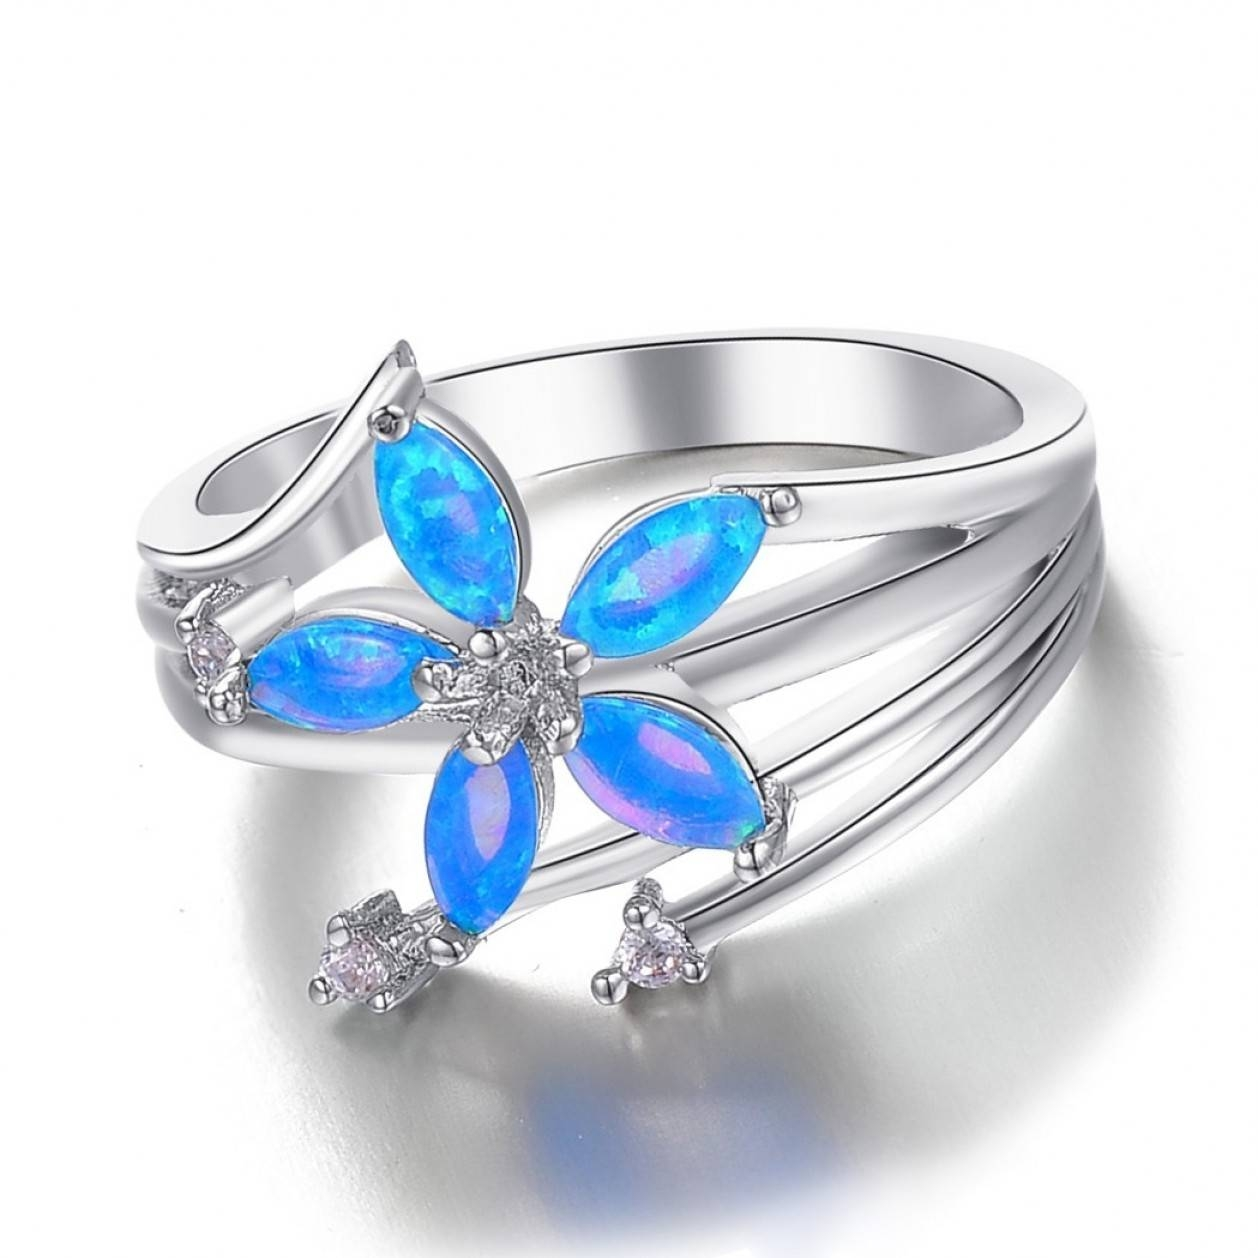 Blue Opal Diamond Engagement Wedding Rings K Gold | Ksvhs Jewellery In Blue Opal Wedding Rings (View 5 of 15)